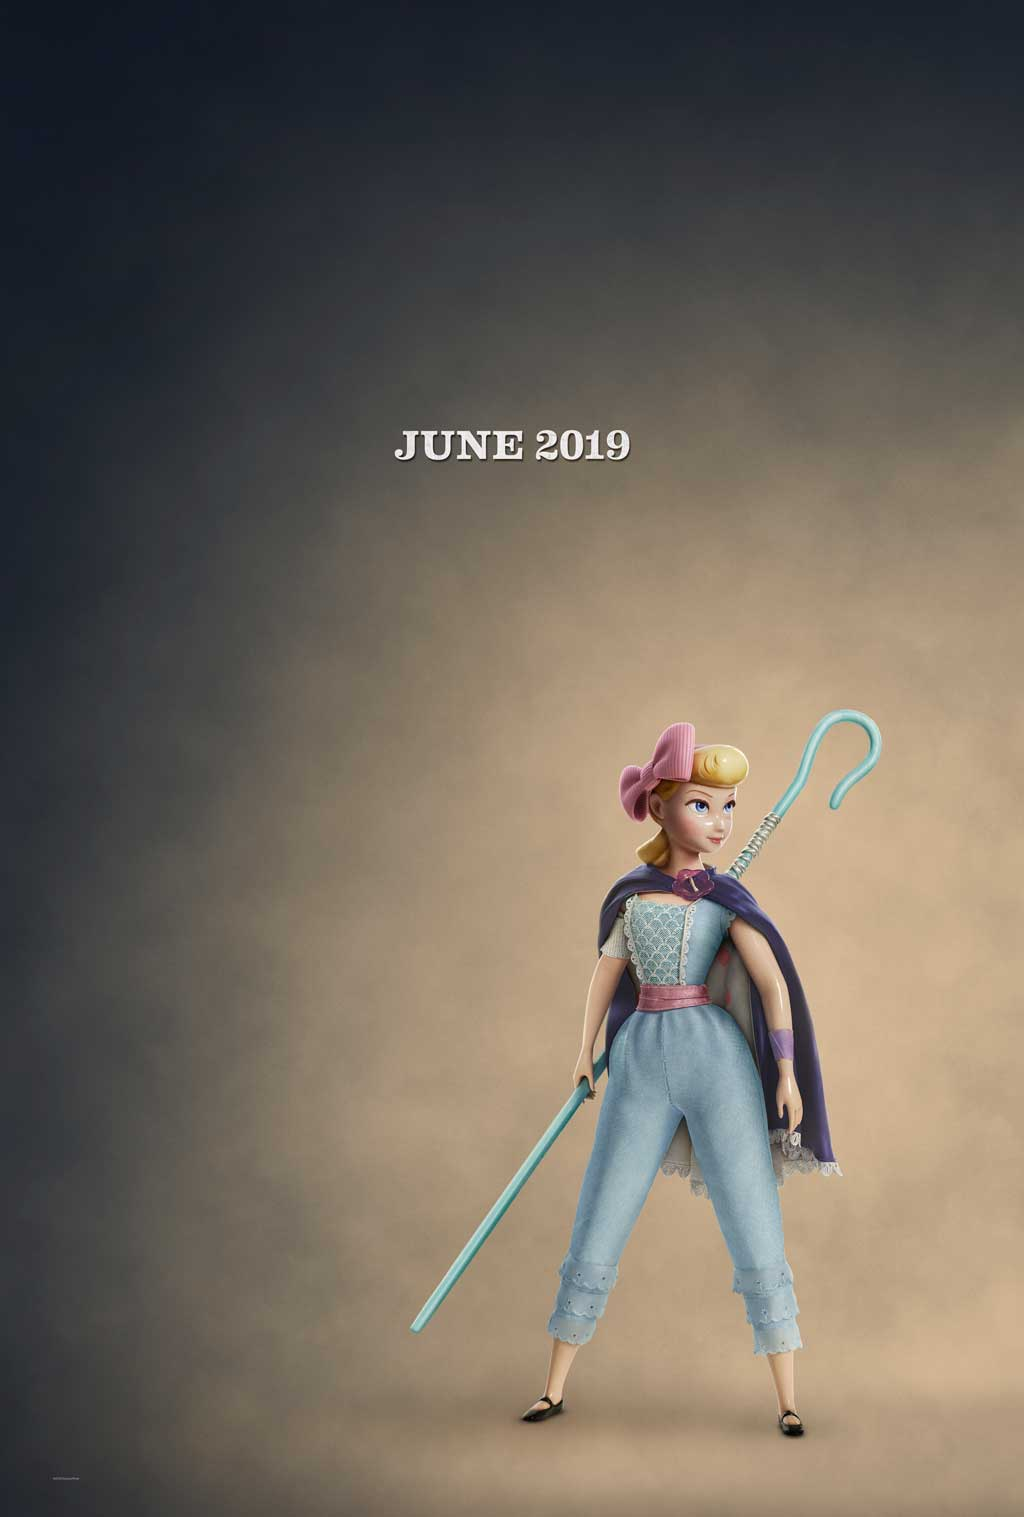 Toy Story 4 - Bo Peep Character Poster